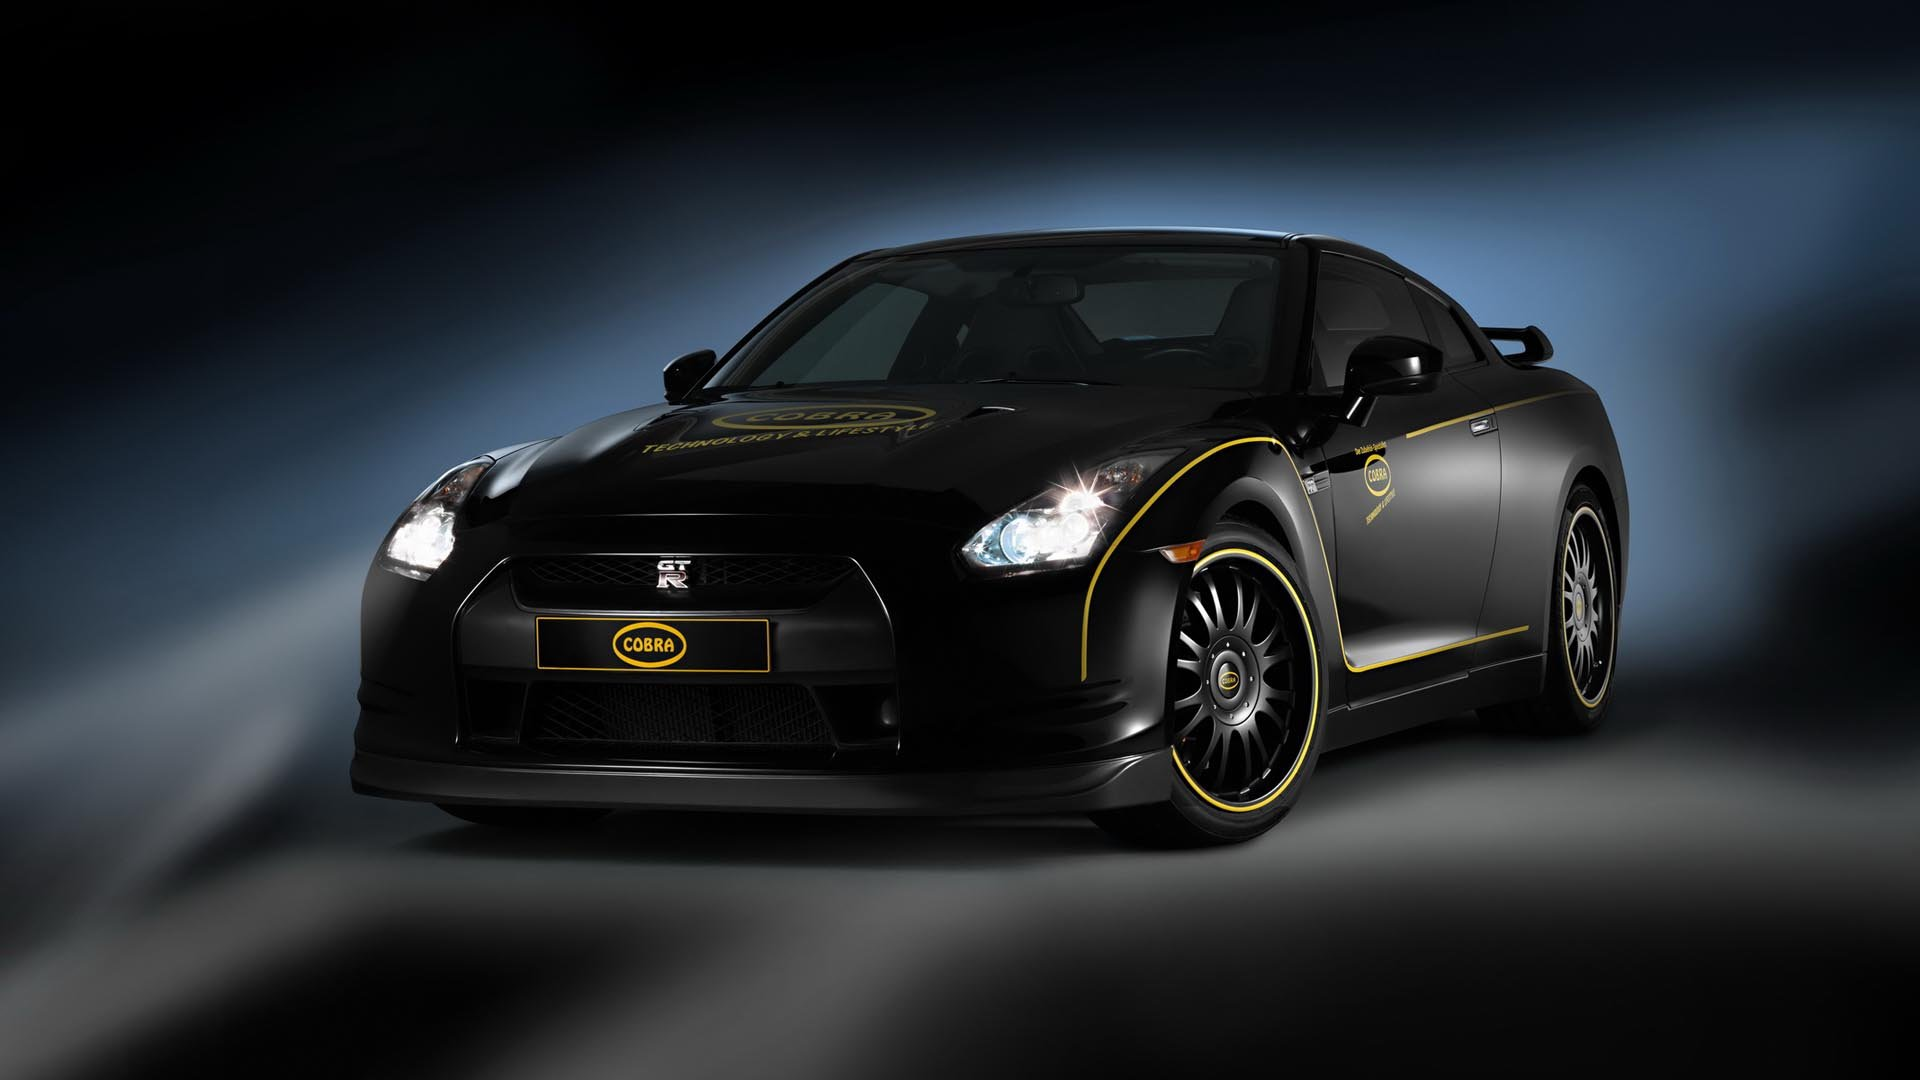 cobra nissan gtr wallpaper hd cars wallpaper hd